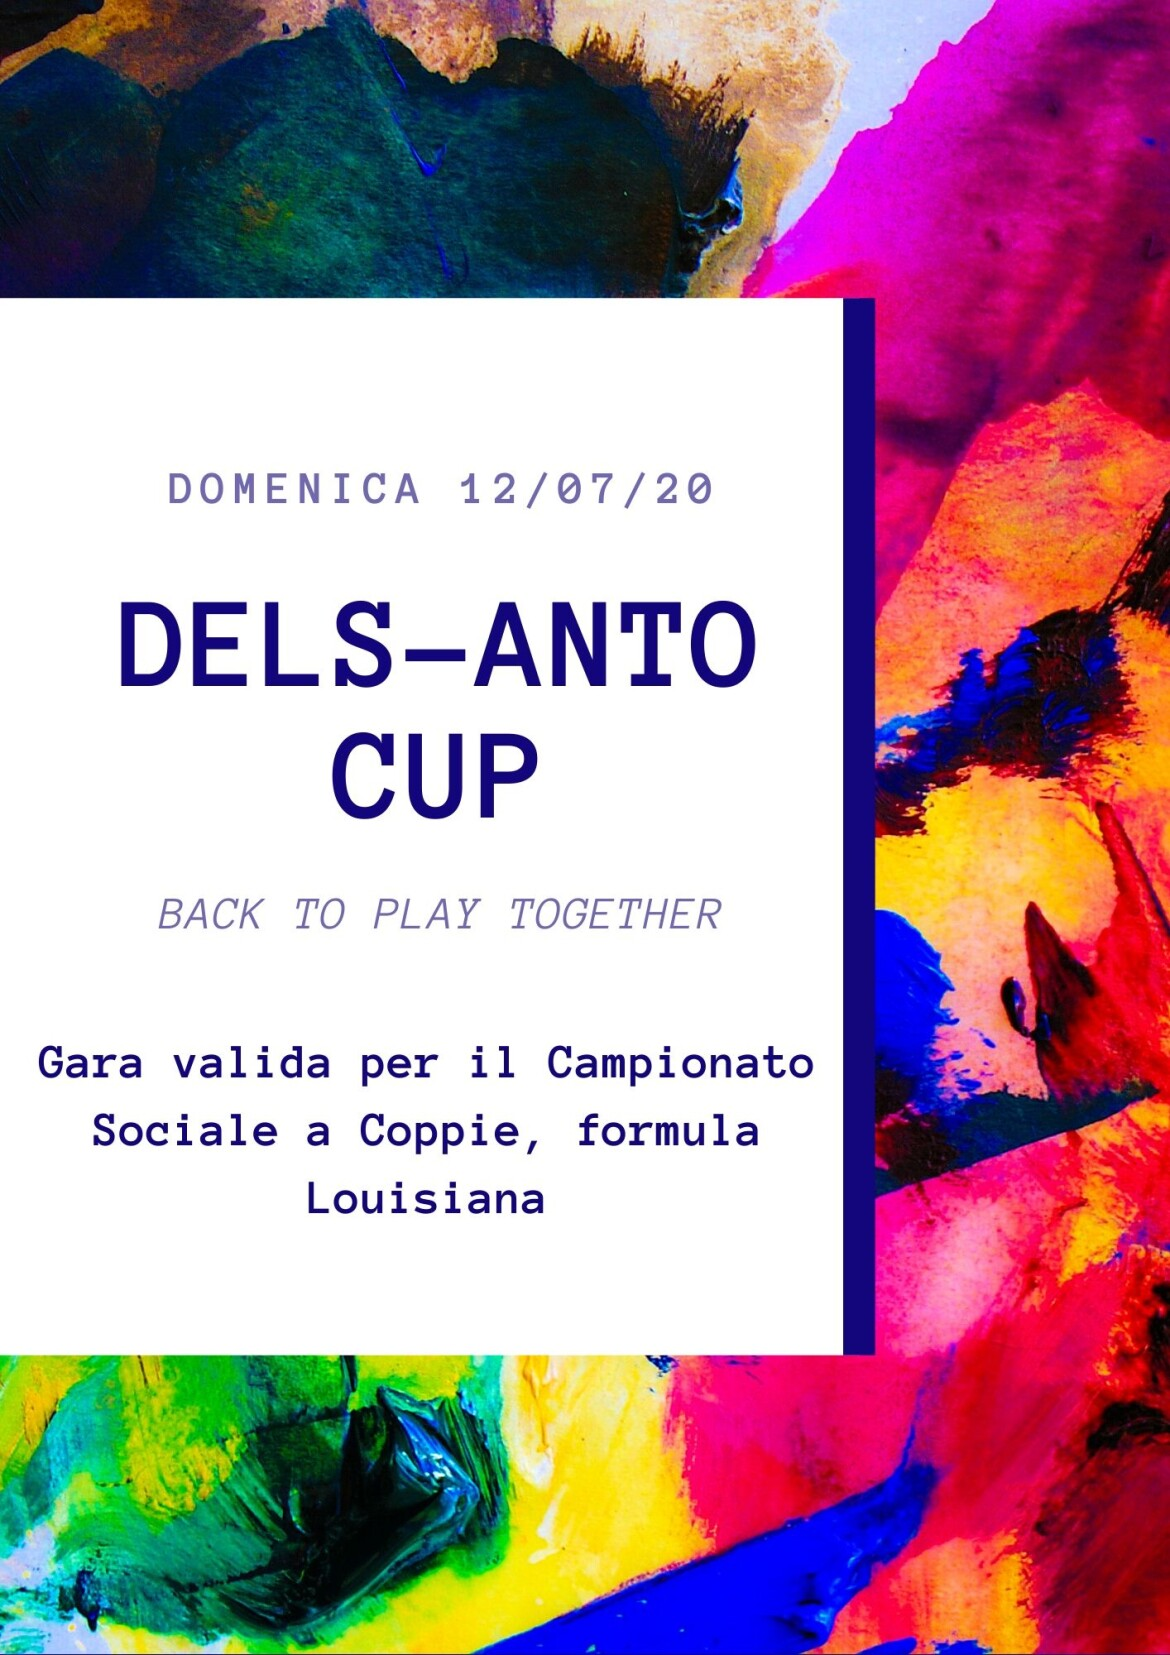 DELS-ANTO CUP 2020 back to play together